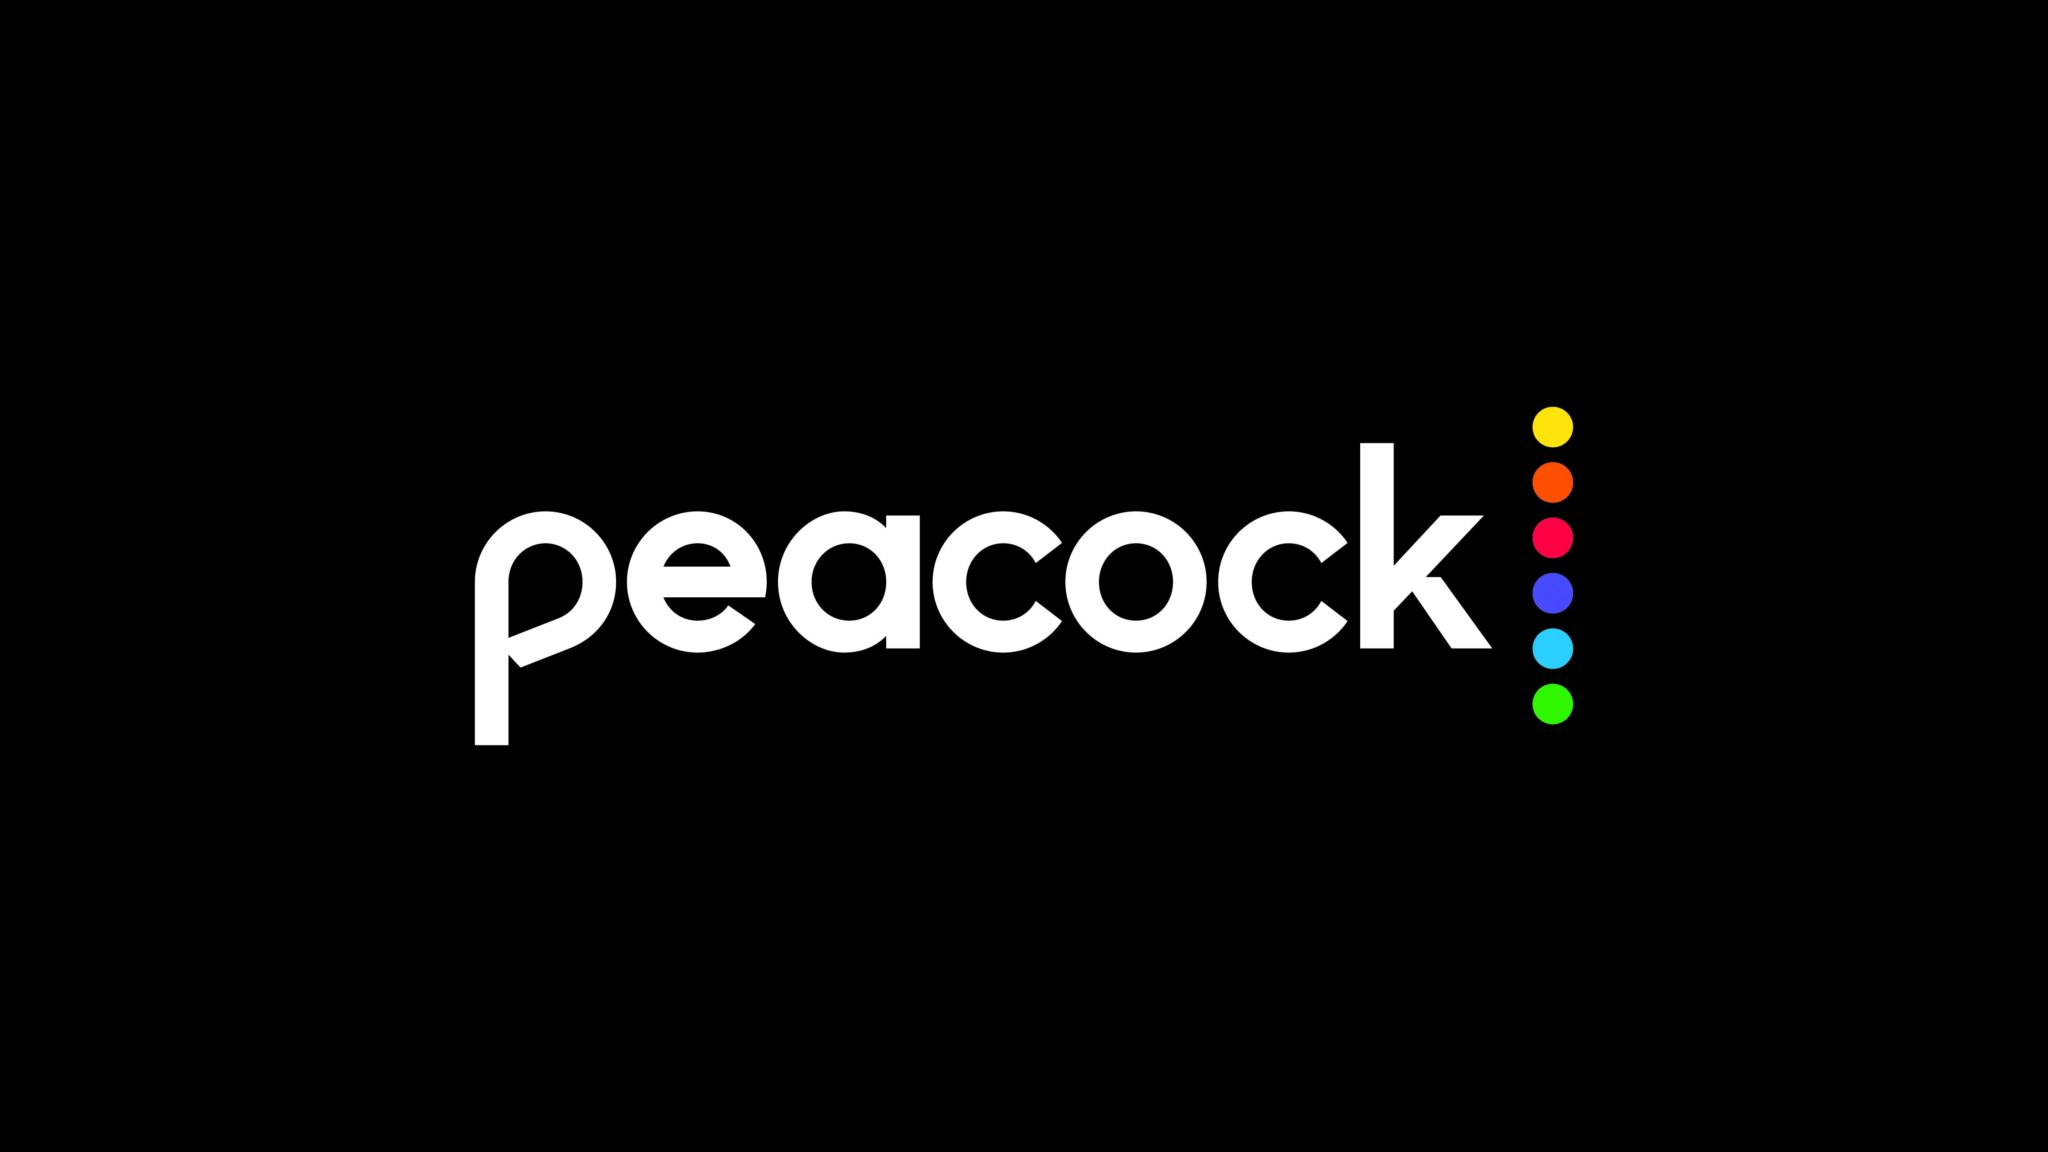 Briefing: Comcast Will Promote Peacock With Flex Broadband Service